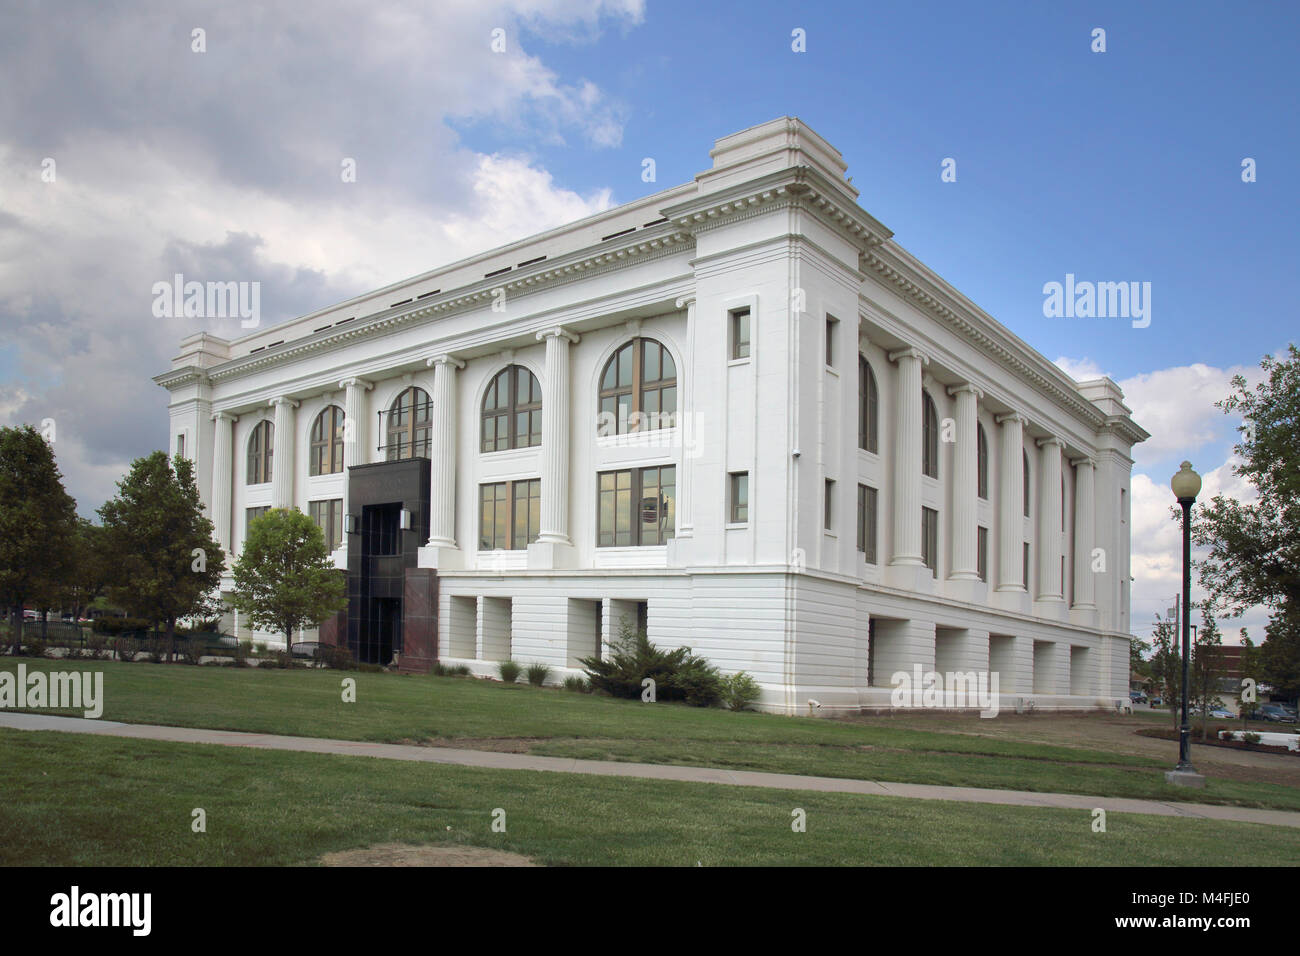 the courthouse in great bend kansas Stock Photo